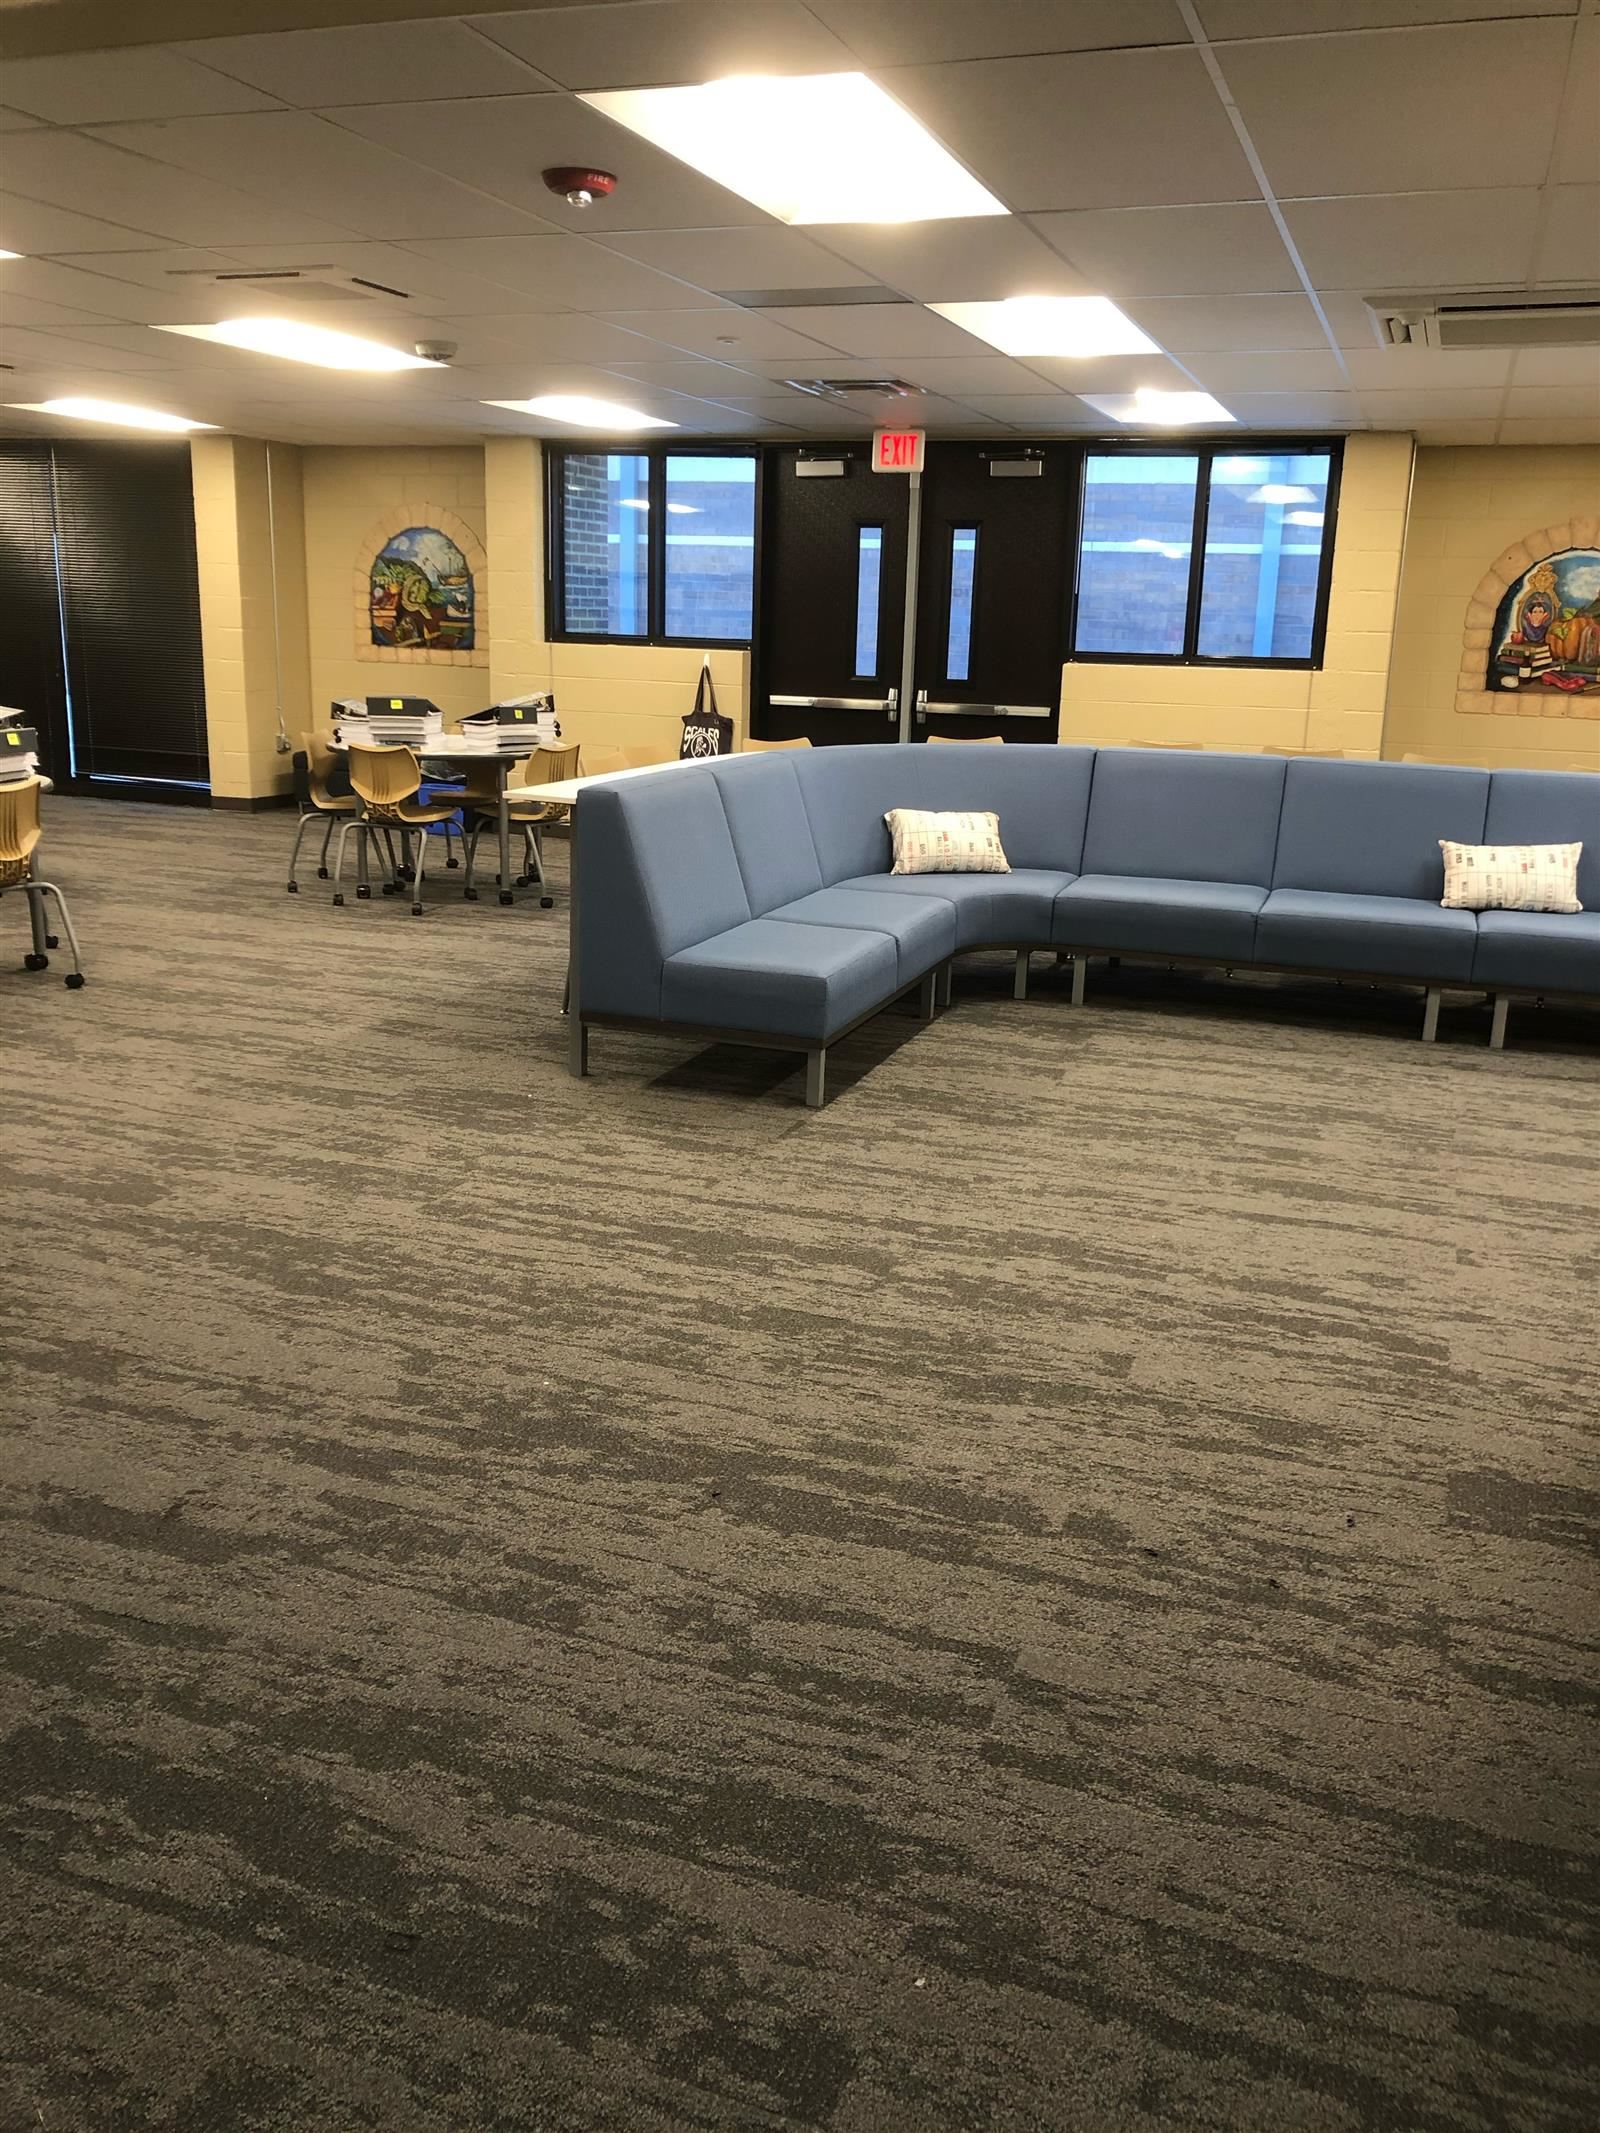 Half moon couch with tables and chairs in the SES Learning commons